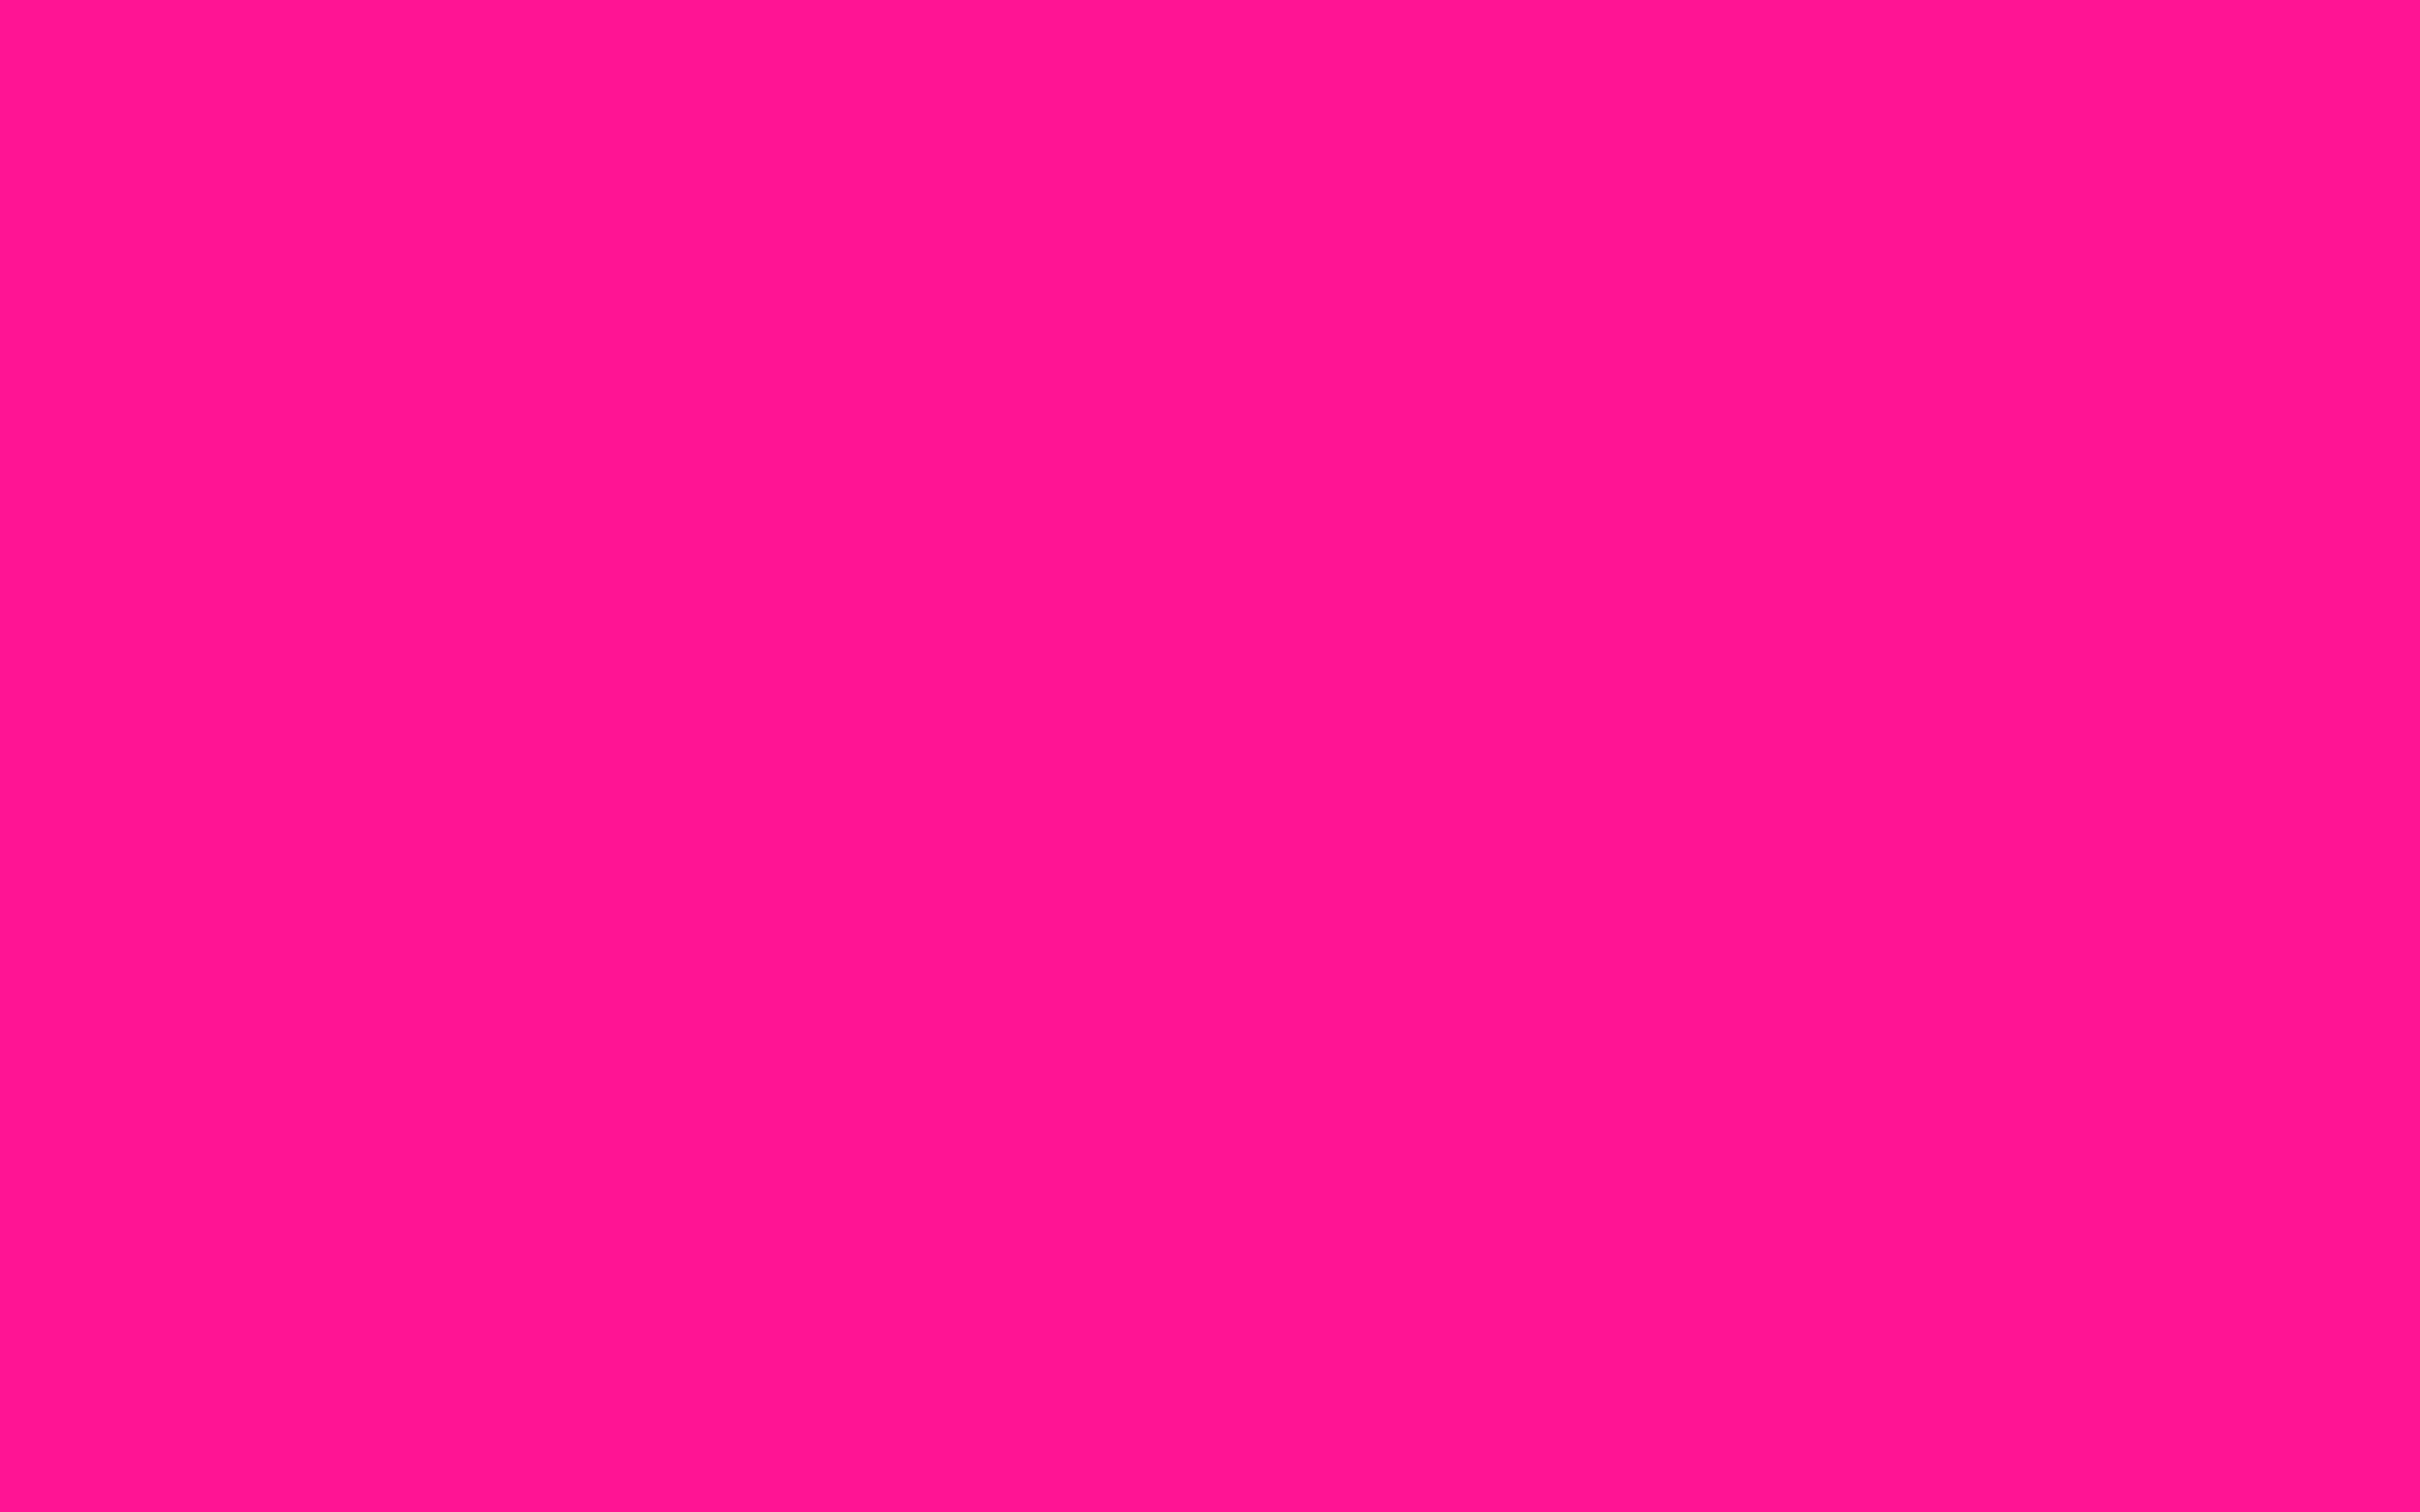 Neon Pink Color Wallpaper   Crazy 4 images 2880x1800